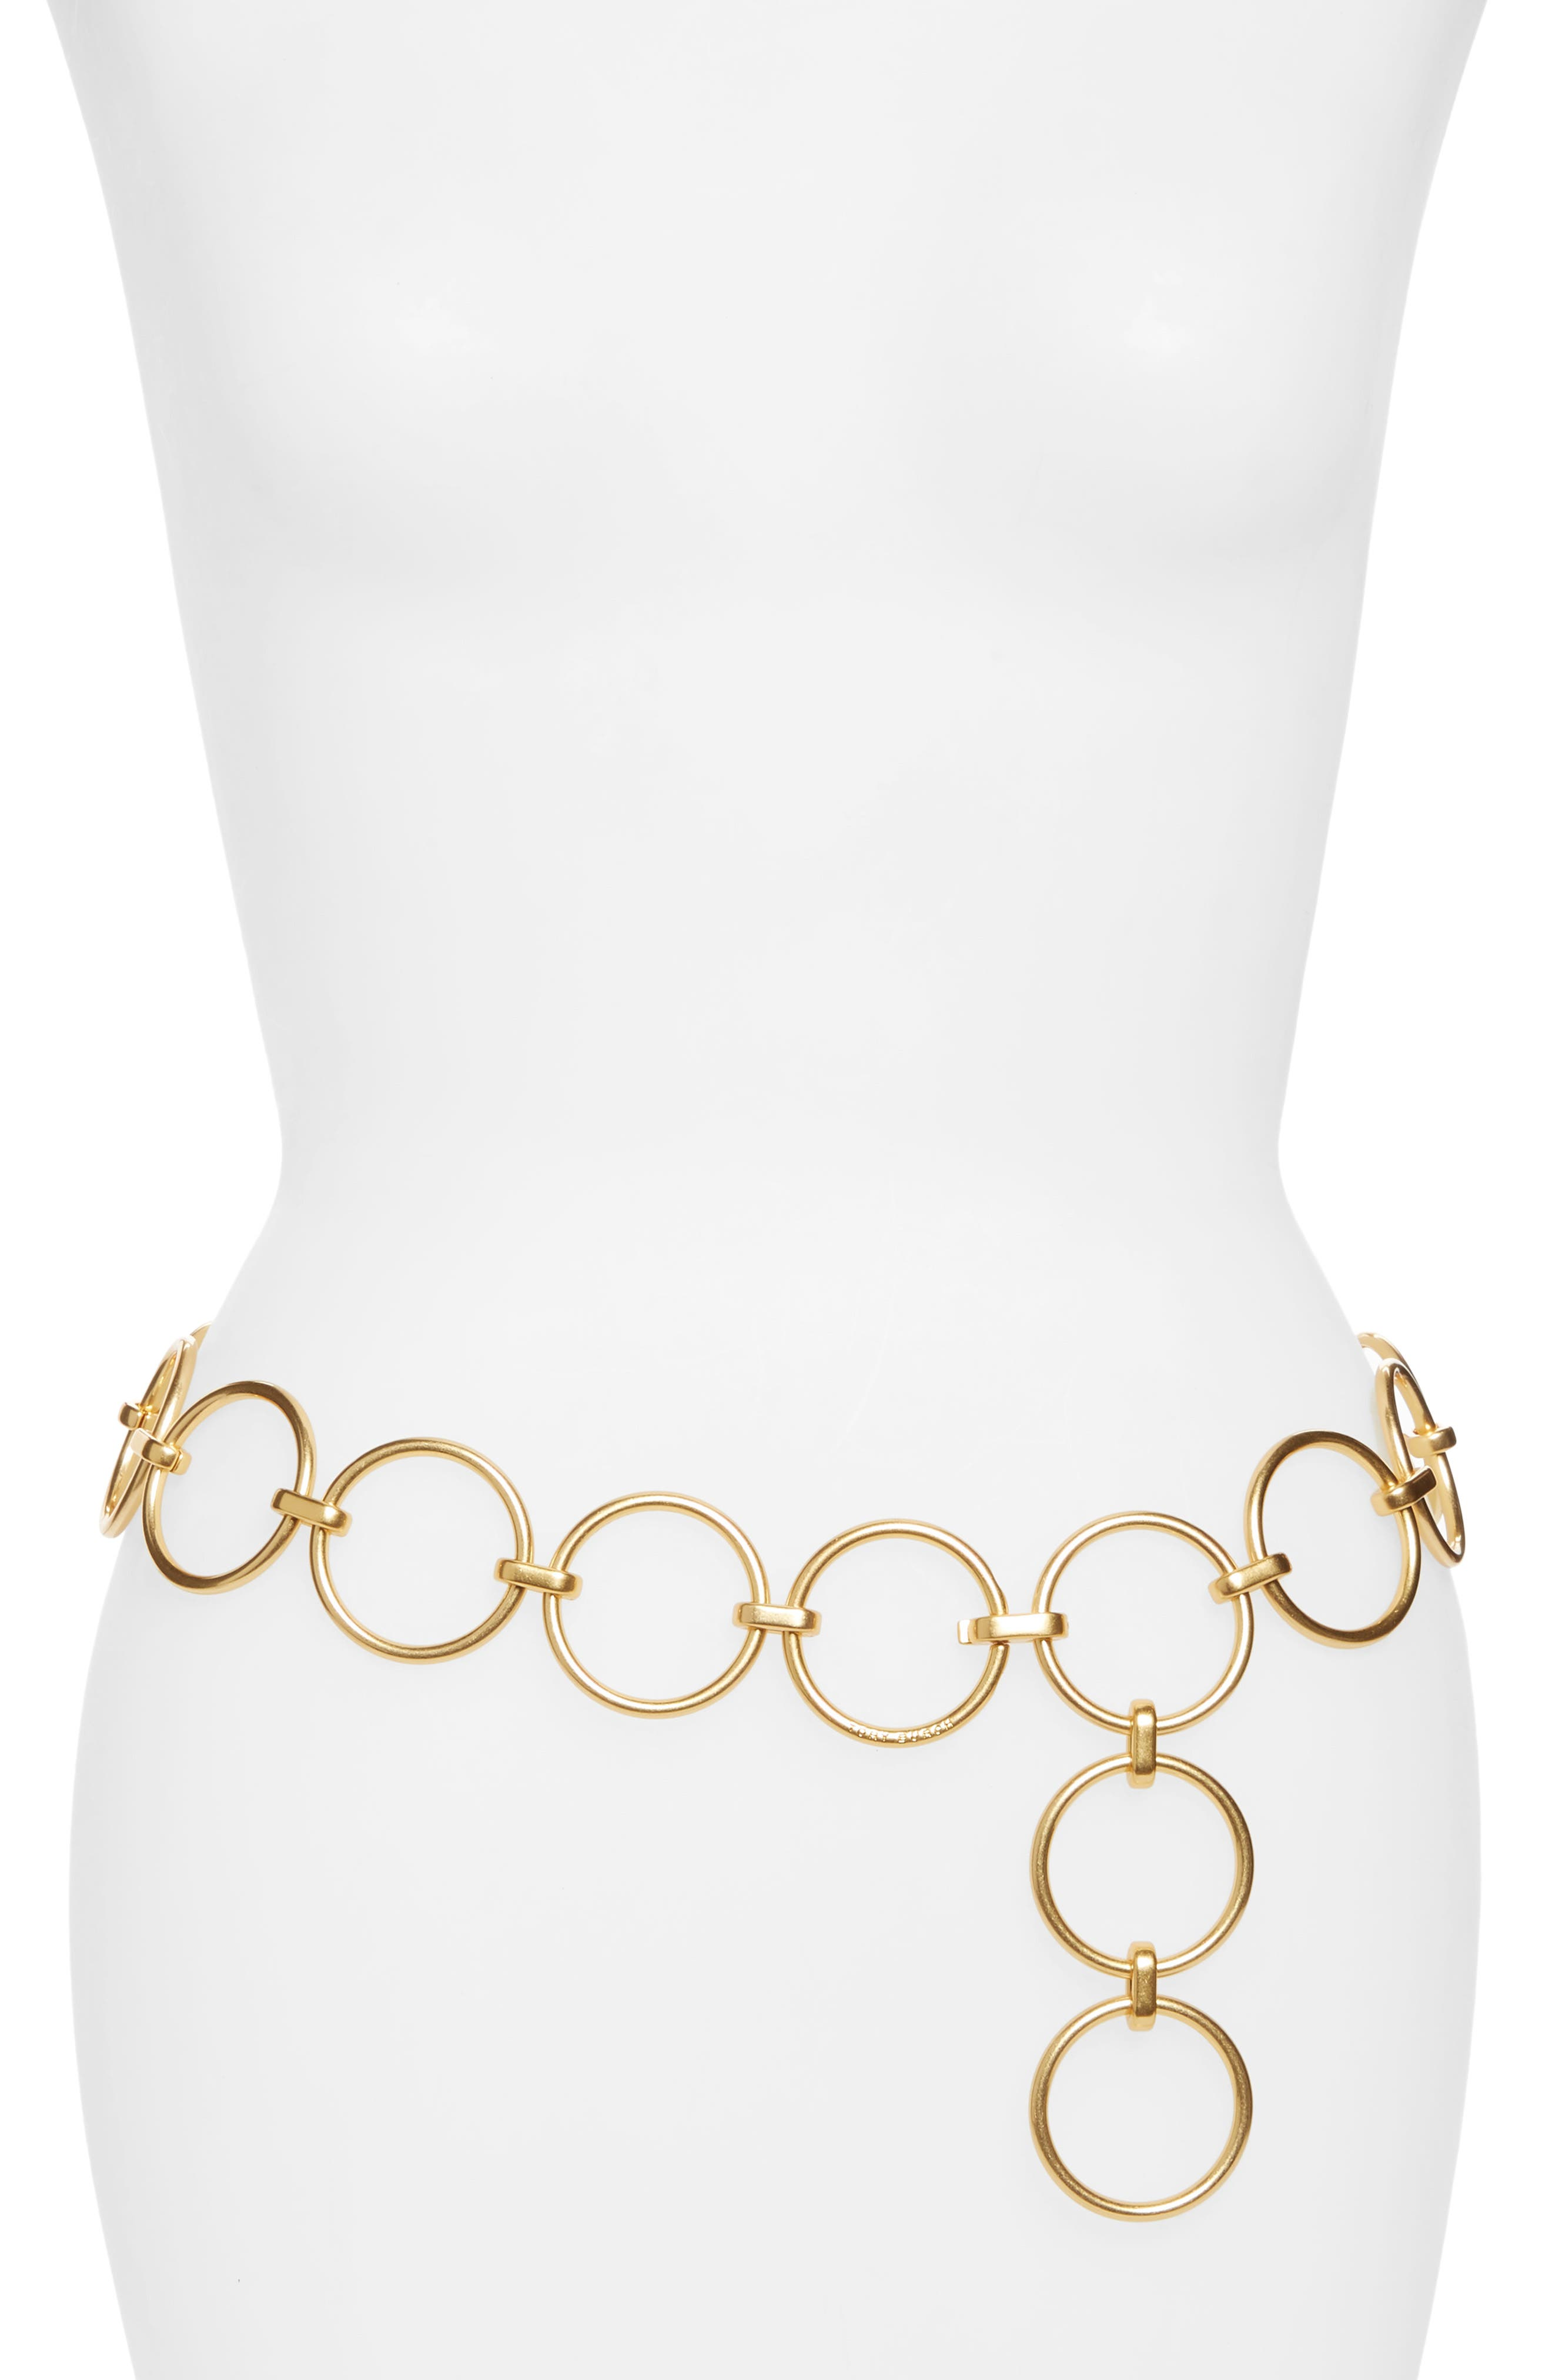 Tory Burch Chain Link Belt, Size One Size - Gold